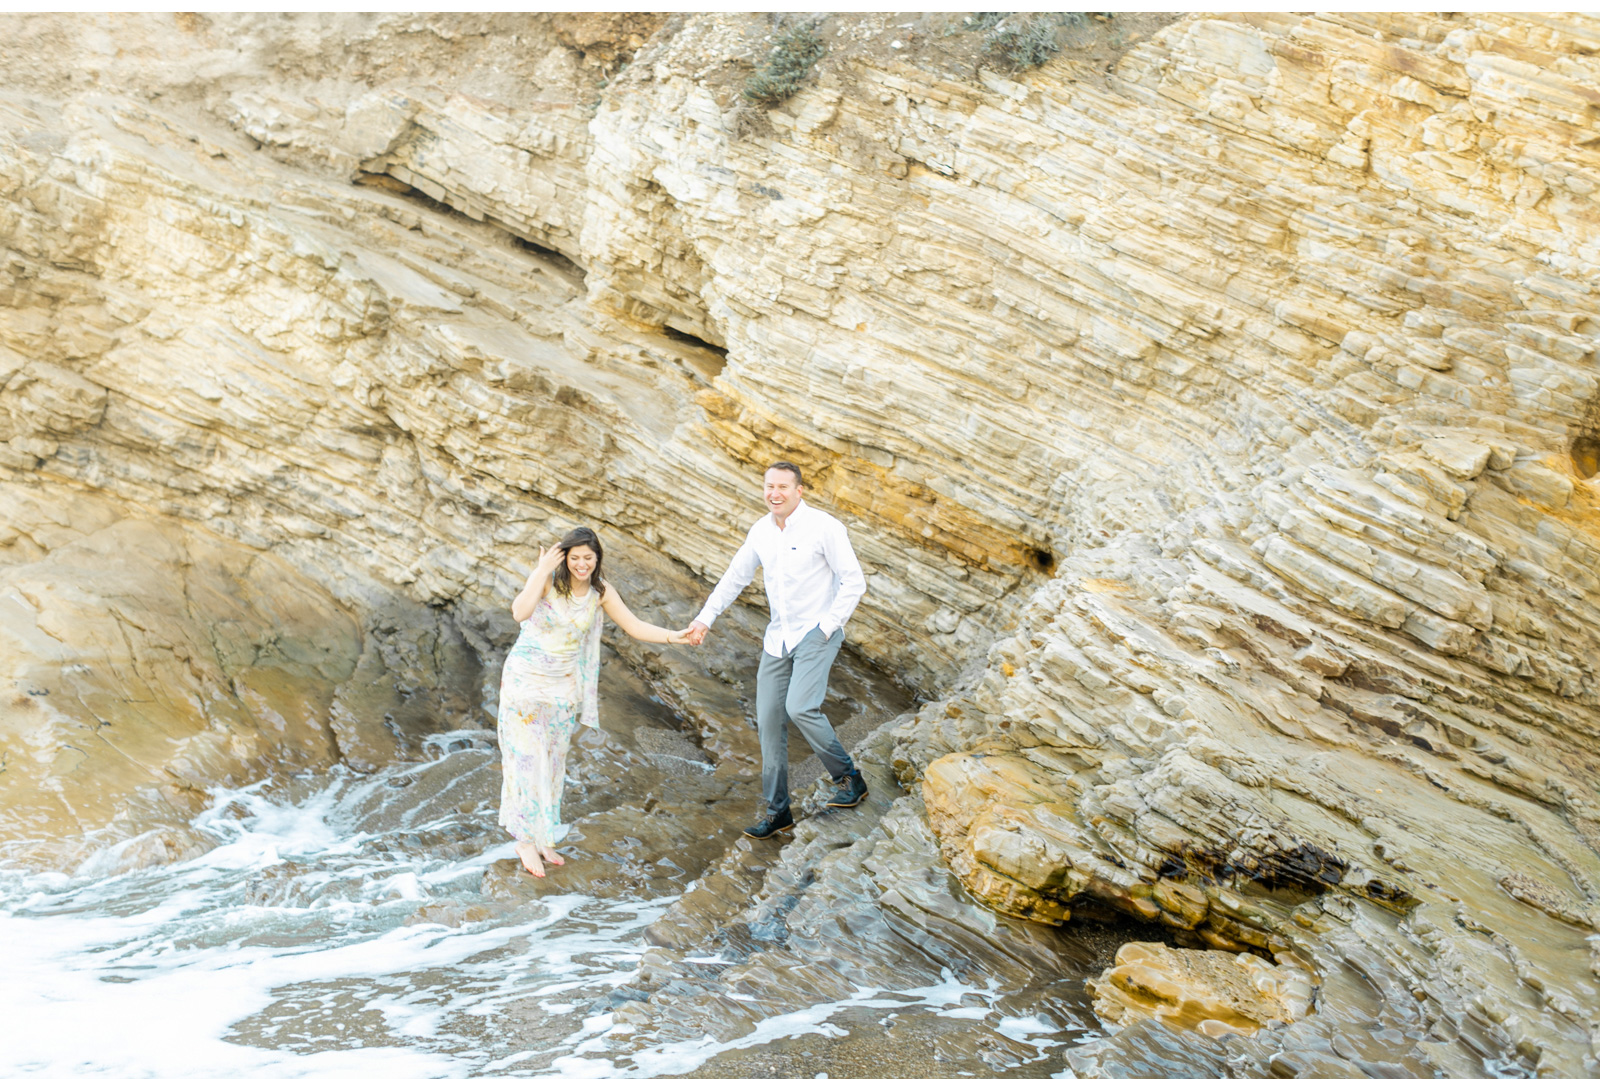 Malibu-Wedding-Photographer-Fine-Art-Photography-Professional-Wedding-Photography-Ocean-Engagement-Natalie-Schutt-Photography_07.jpg